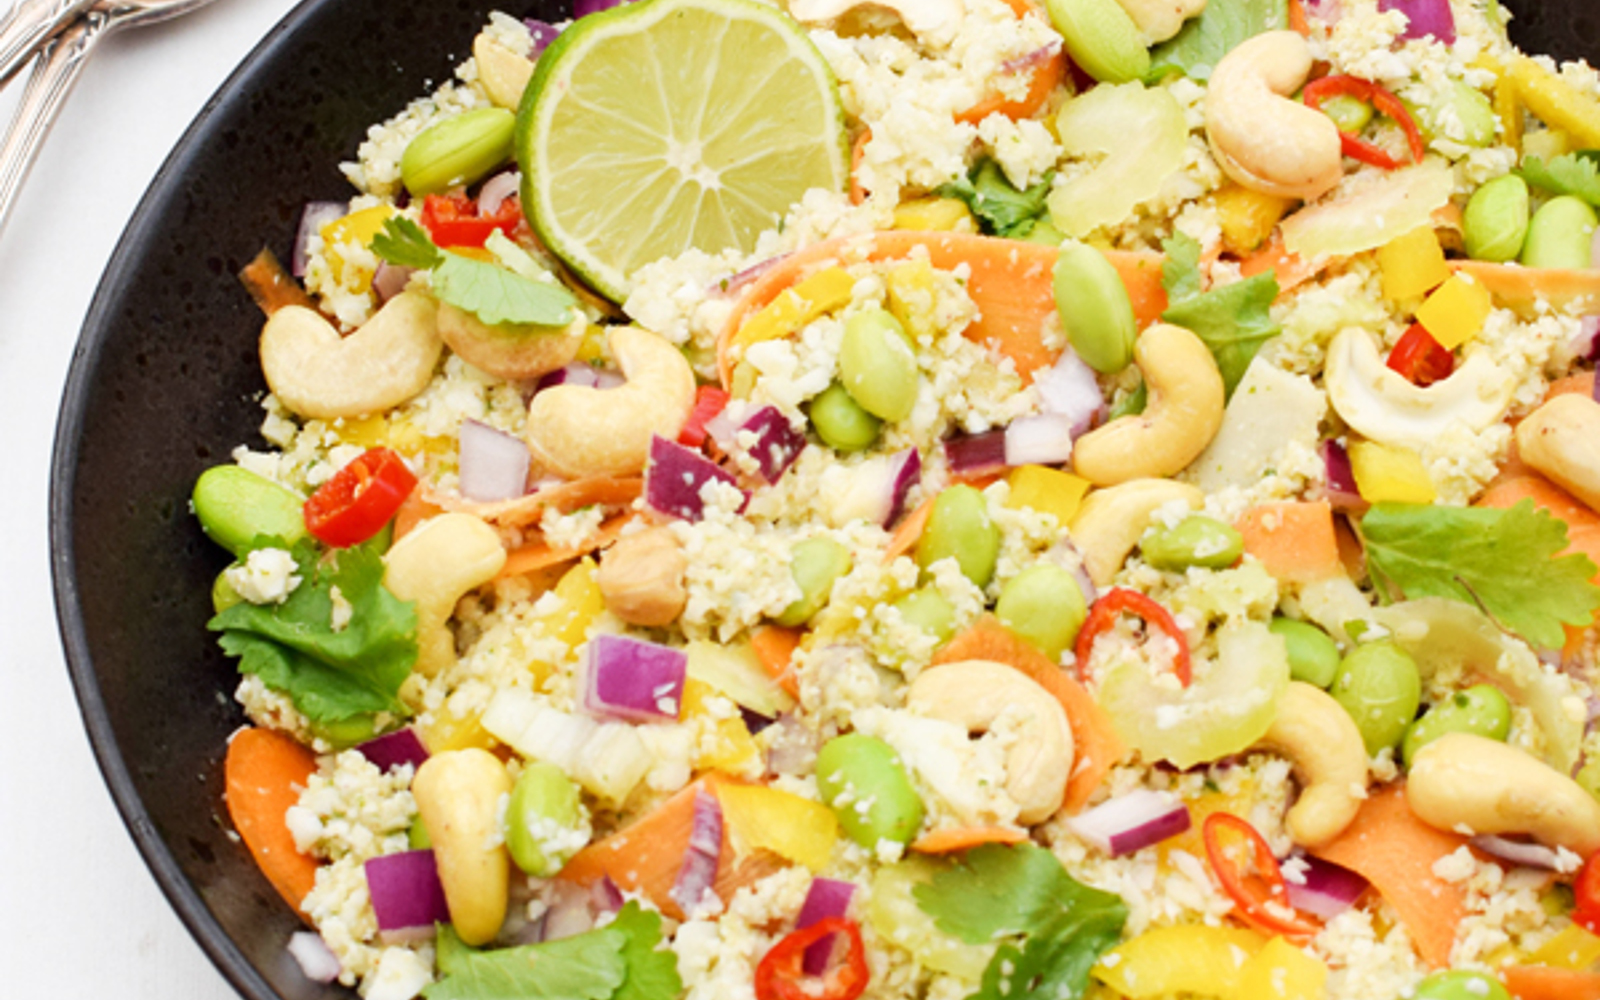 Crunchy Cashew Asian Cauliflower Rice Salad [Vegan, Gluten-Free]